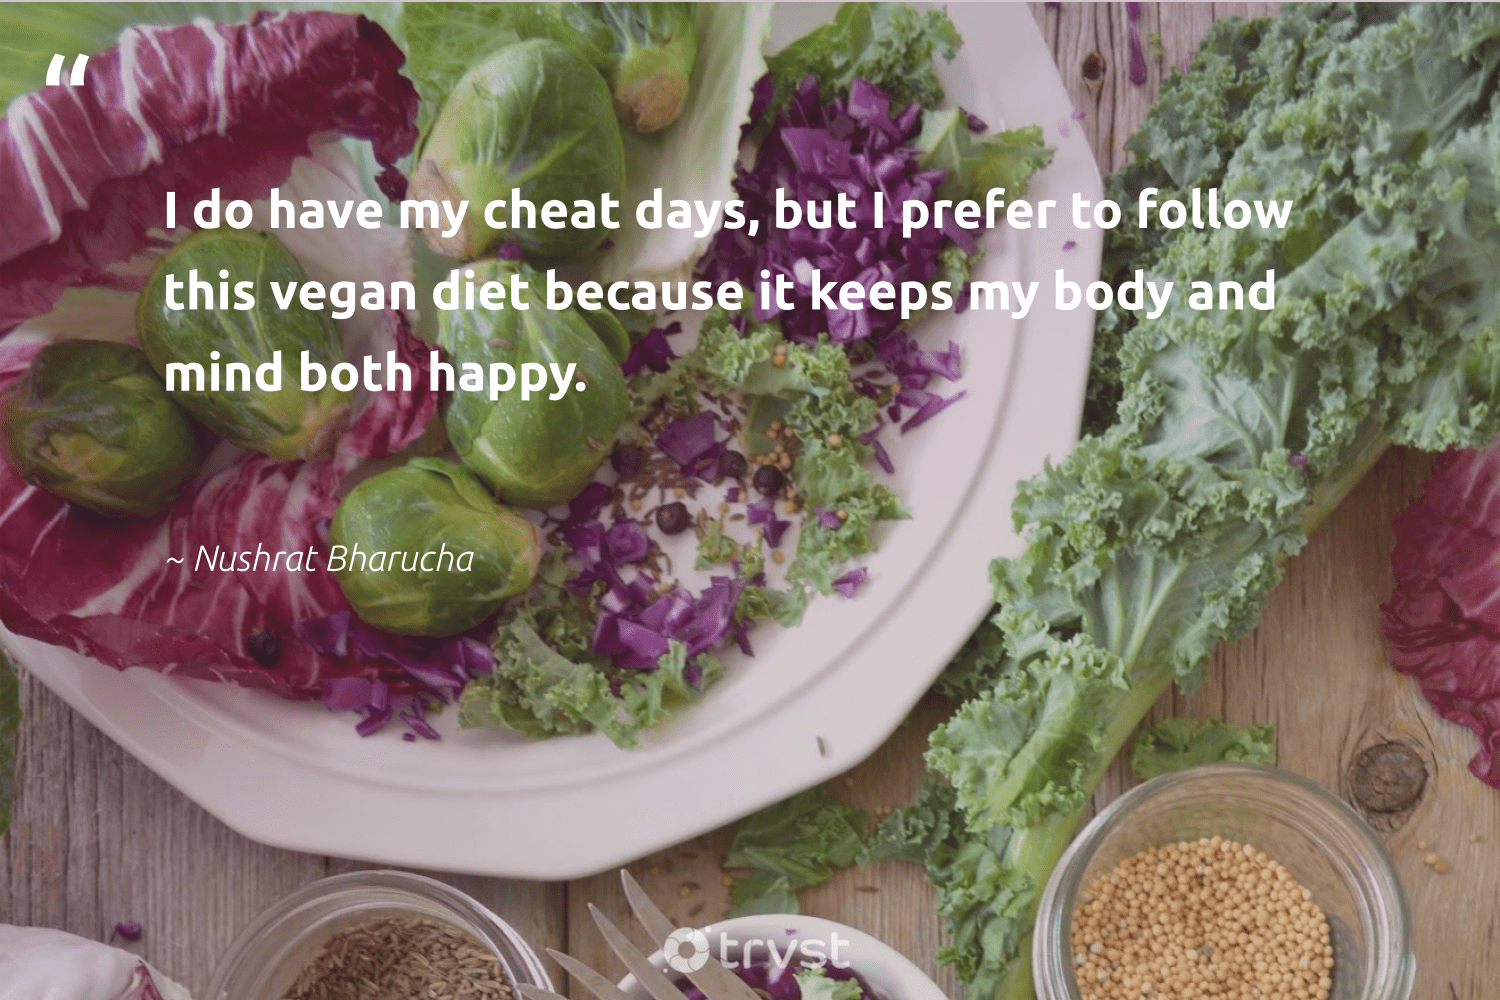 """I do have my cheat days, but I prefer to follow this vegan diet because it keeps my body and mind both happy.""  - Nushrat Bharucha #trvst #quotes #vegan #happy #whatveganseat #sustainability #greenliving #impact #veganfoodshare #green #gogreen #planetearthfirst"